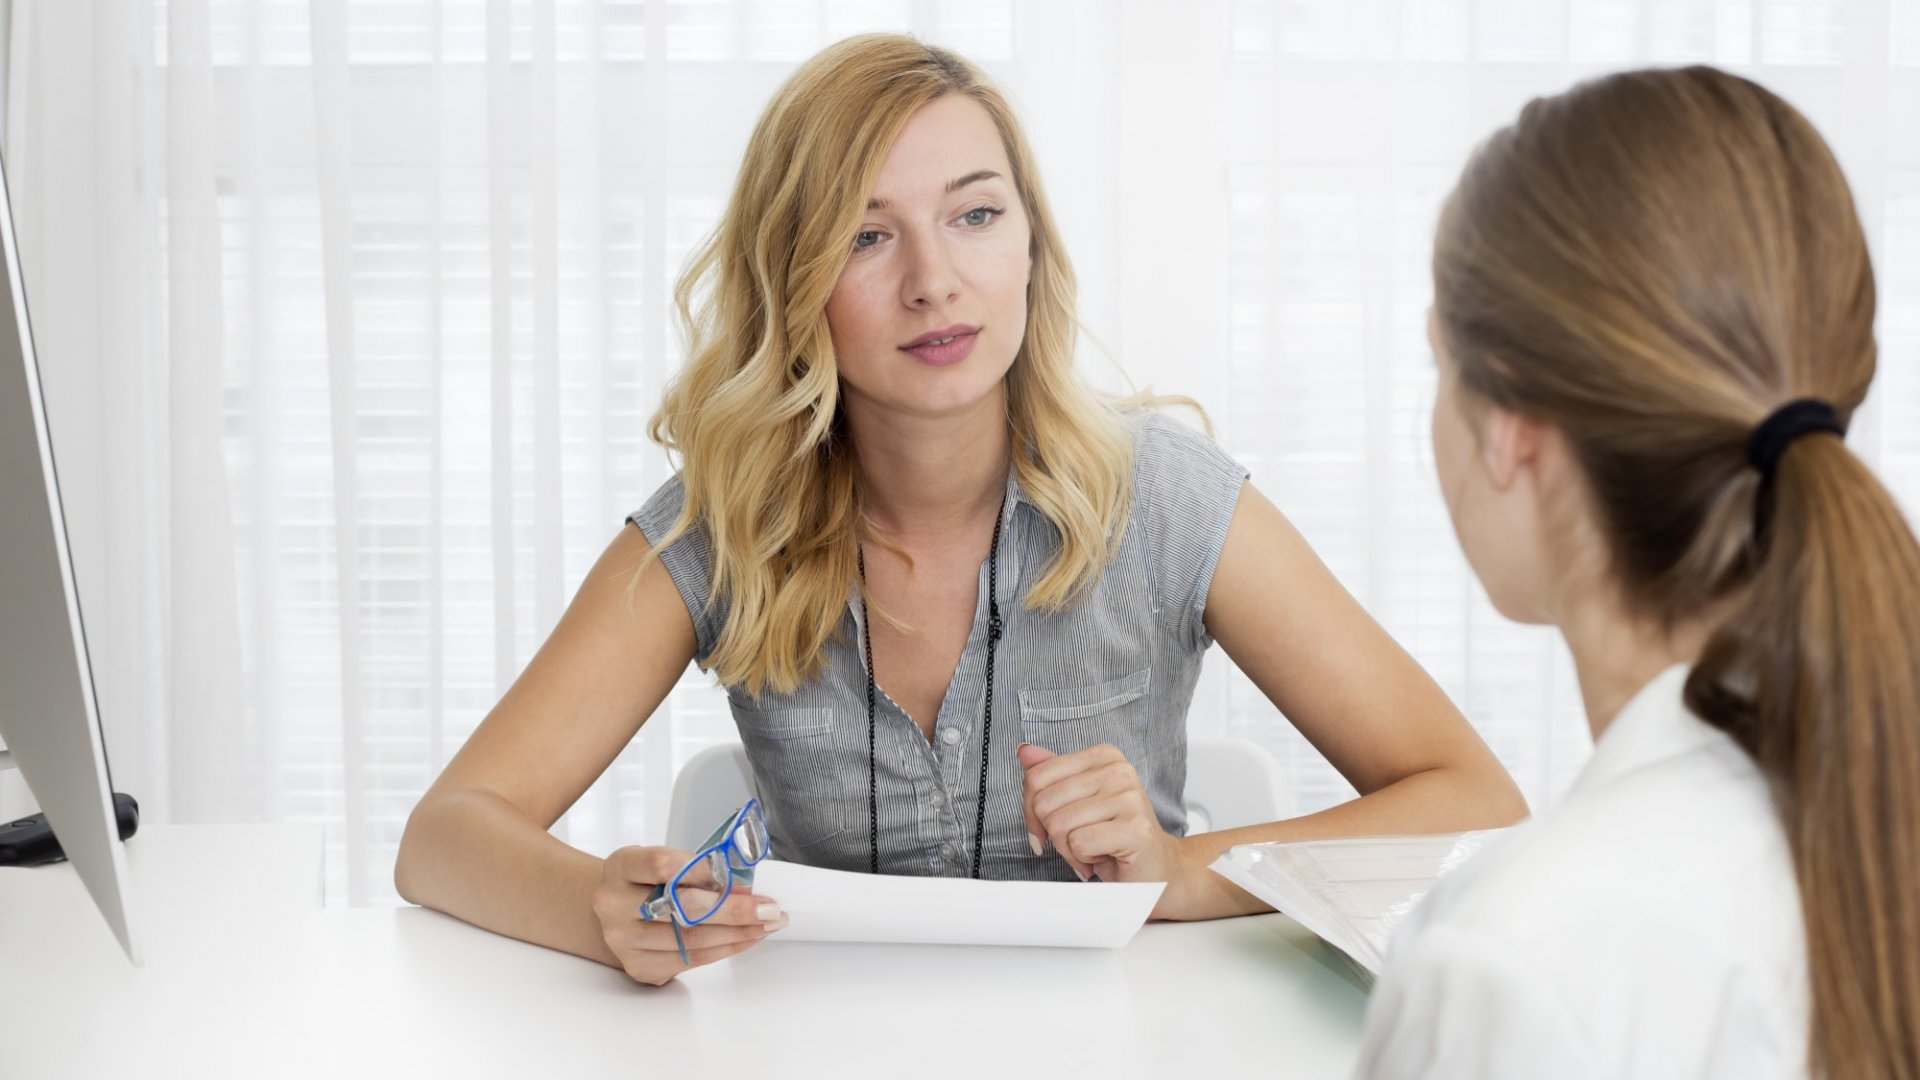 To Get The Job, Be Prepared For These Interview Topics